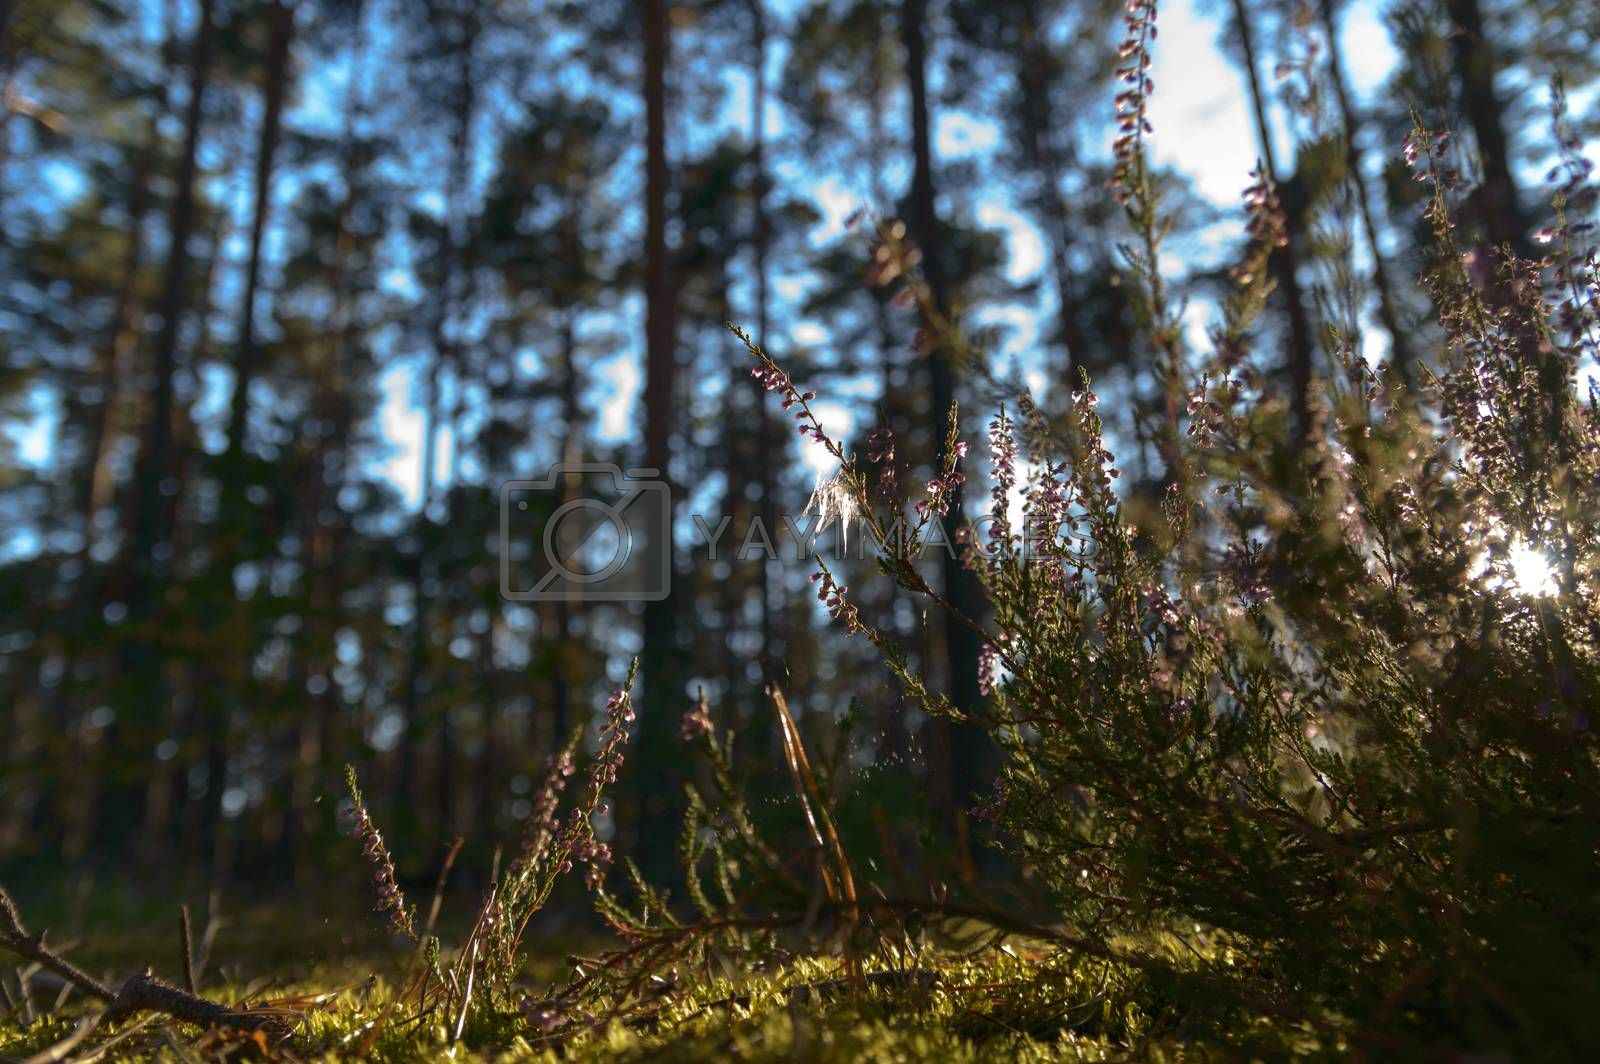 Sunlight in the green forest, nature series